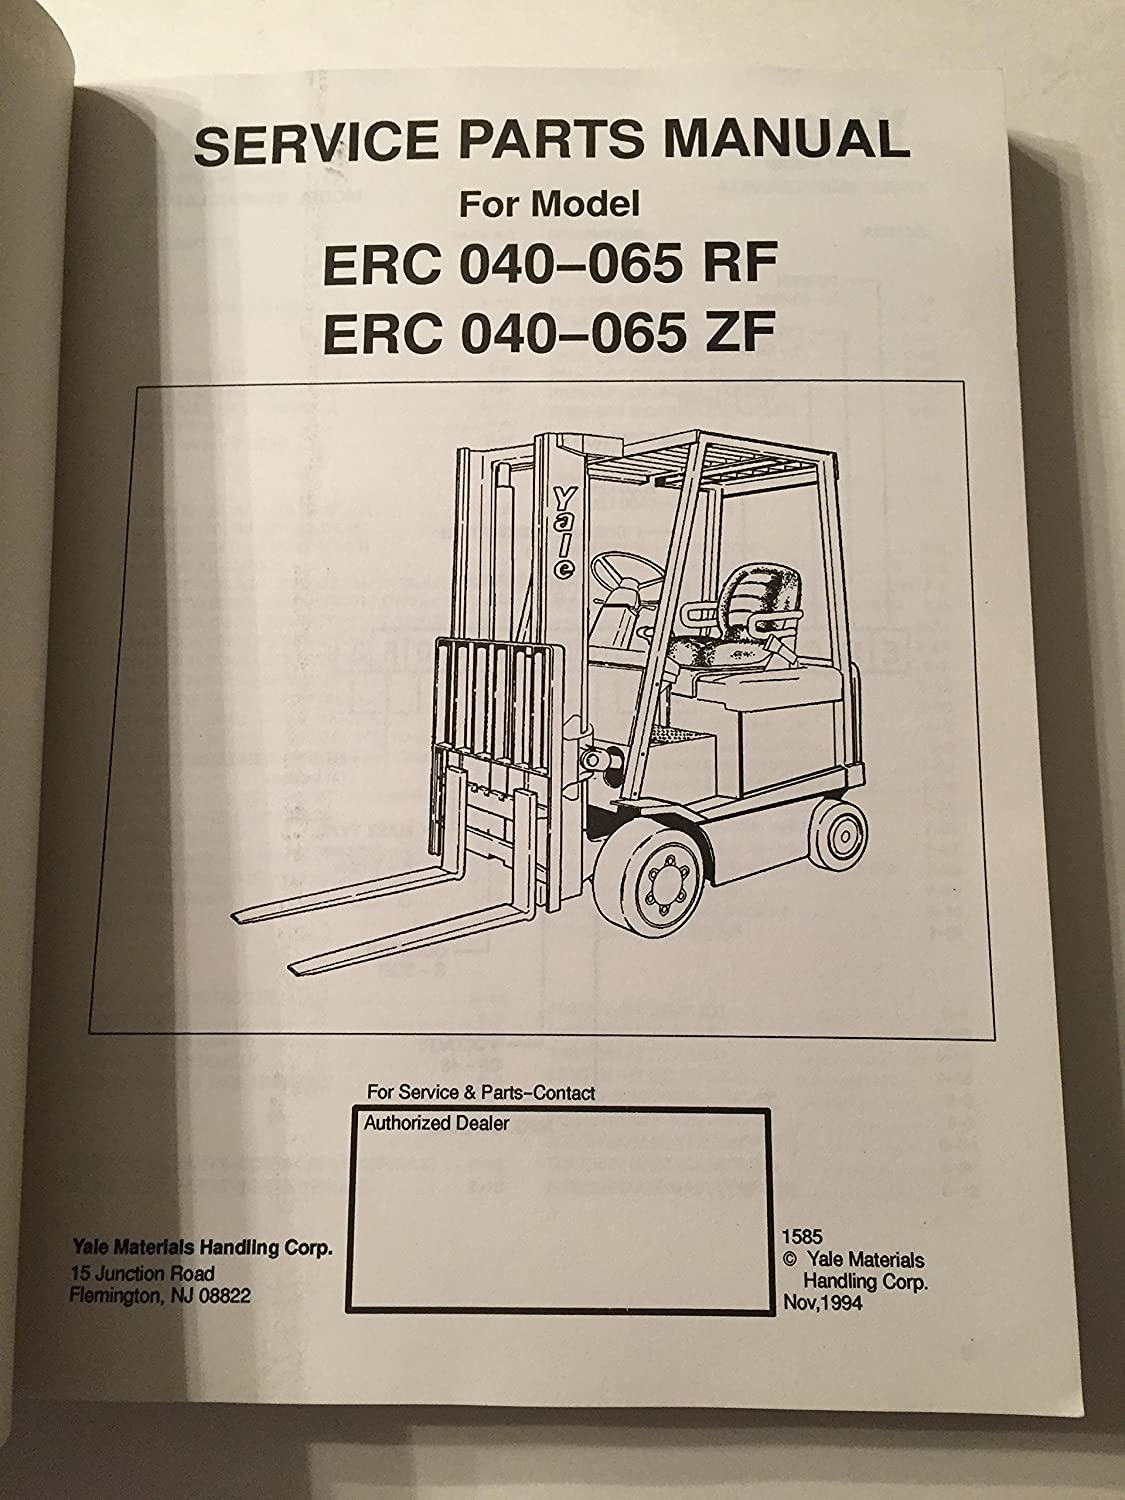 Yale Parts Diagrams Expert Schematics Diagram Glp060 Wiring Instructions Service Manual Erc 040 050 060 065 Rf Zf Mpe060